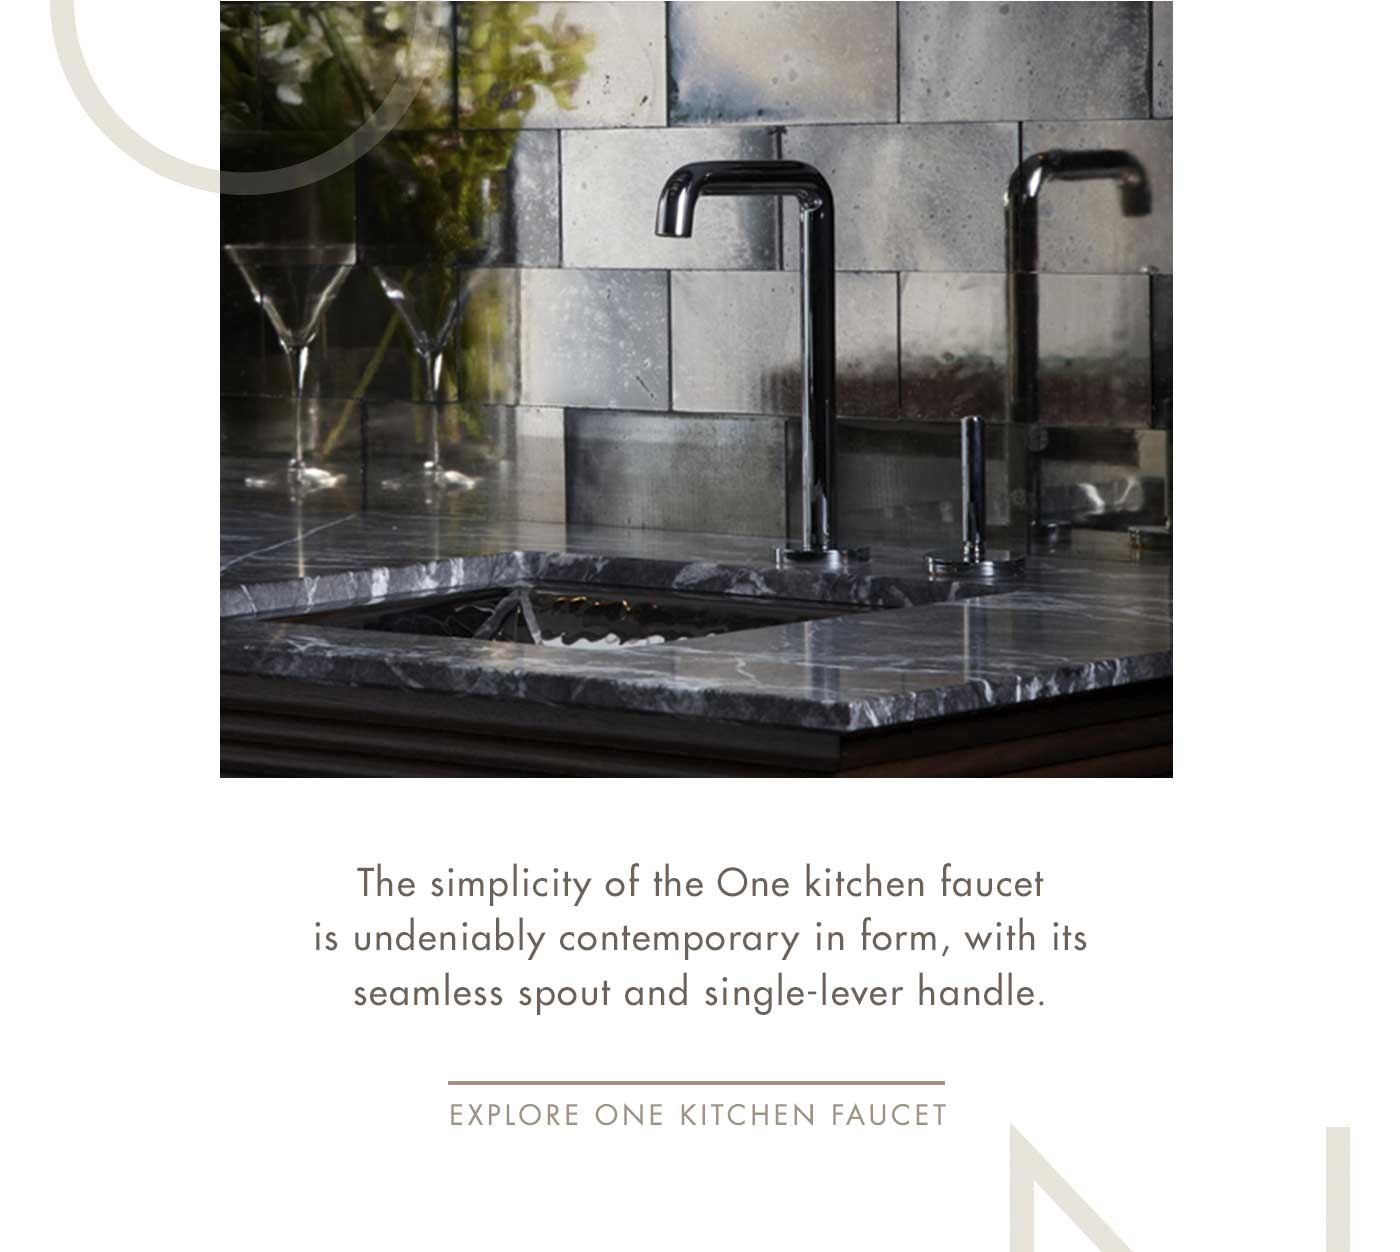 The simplicity of the One kitchen faucet is undeniably contemporary in form, with its seamless spout and single-lever handle. | Explore One Kitchen Faucet